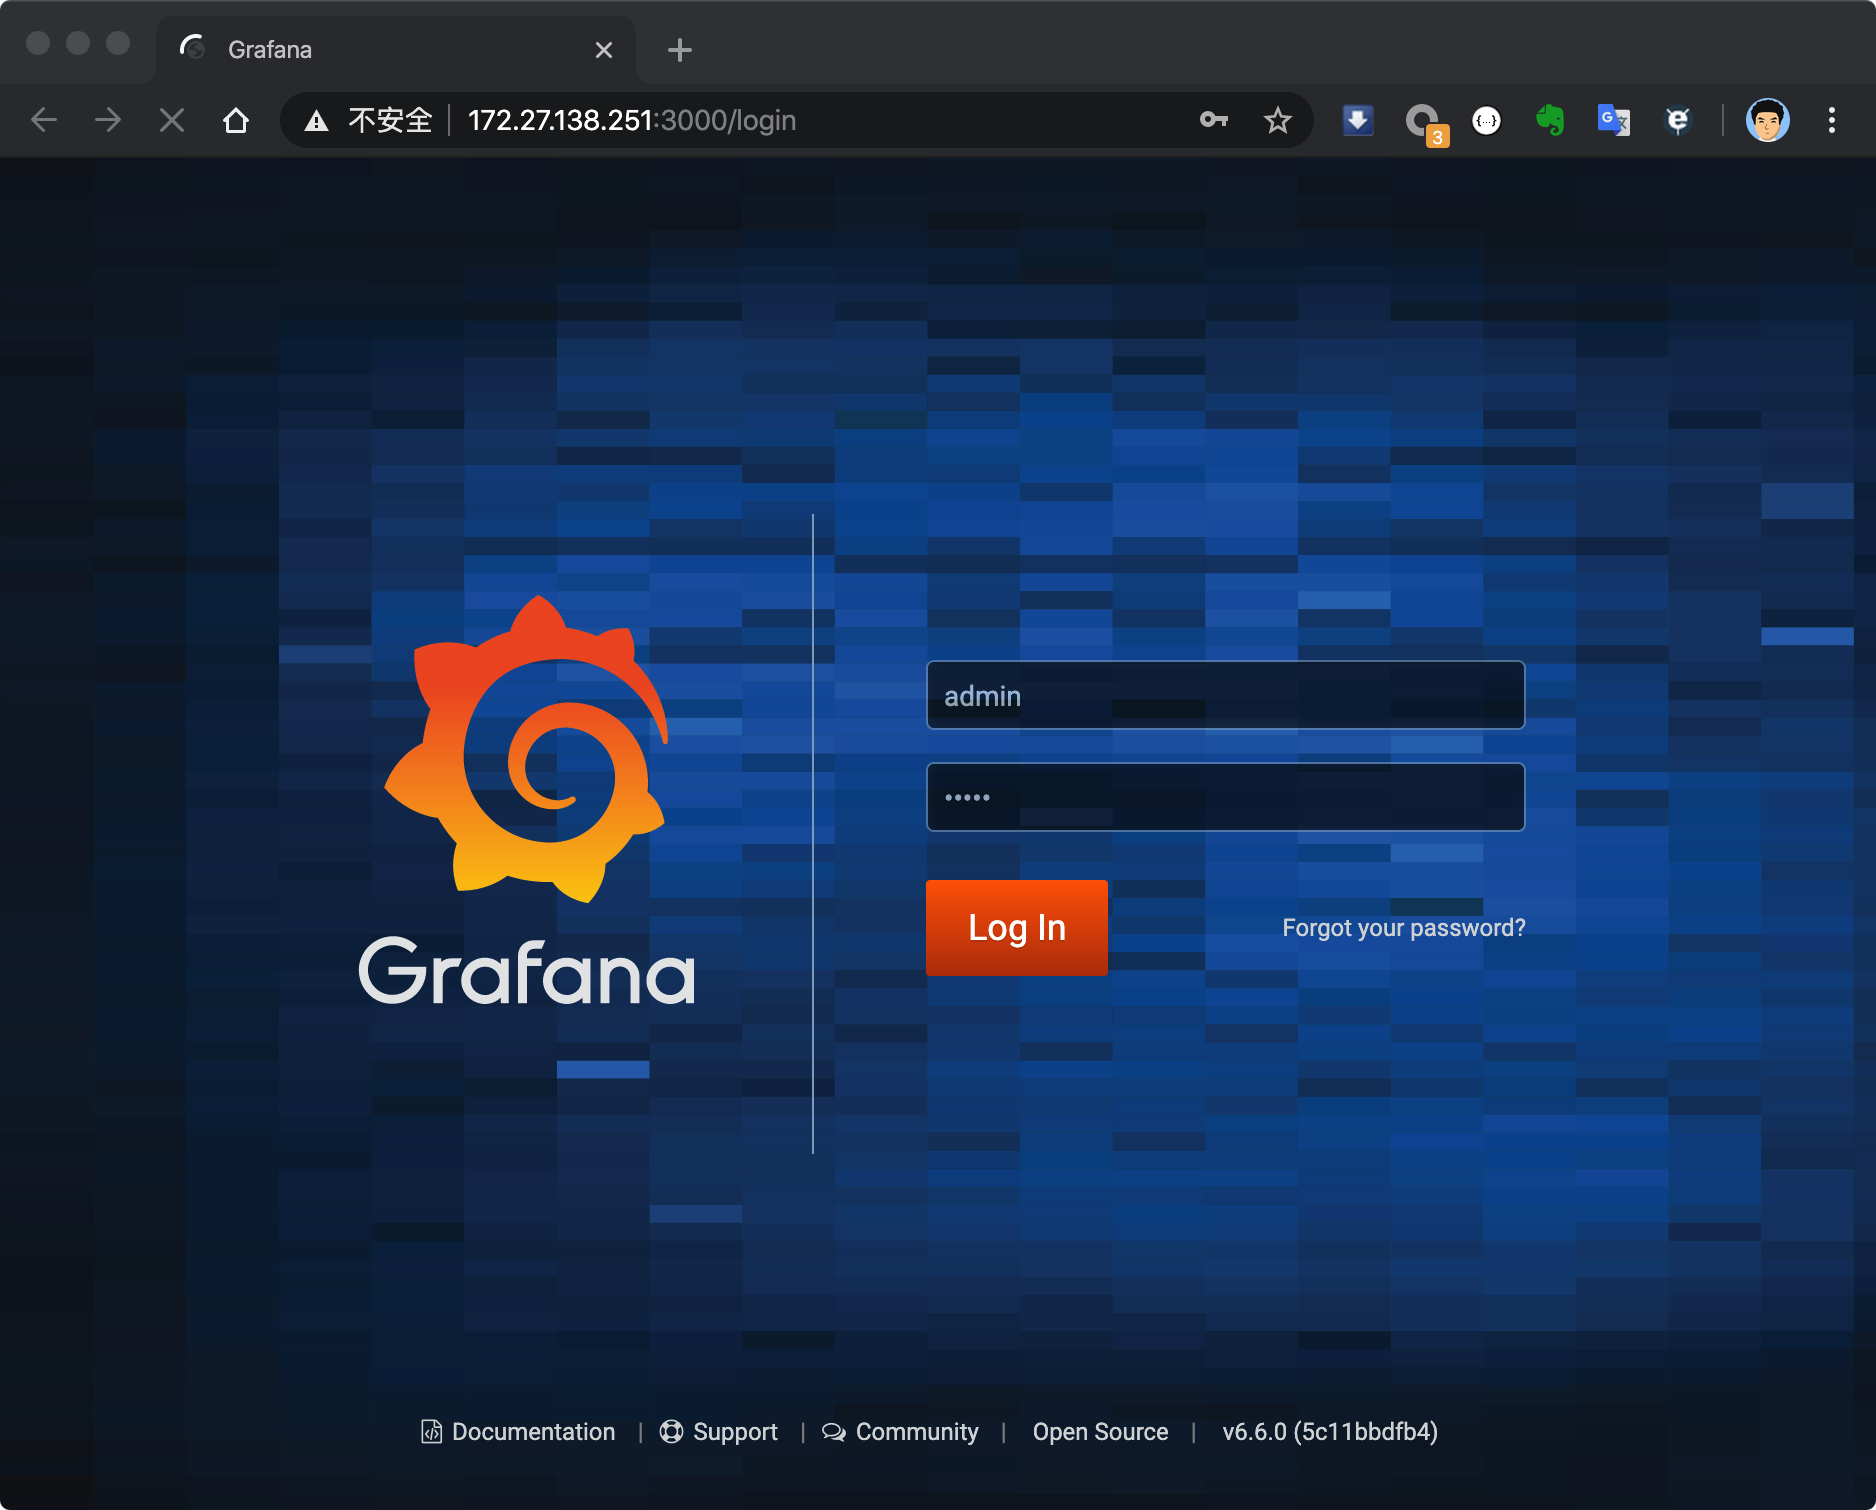 grafana_login